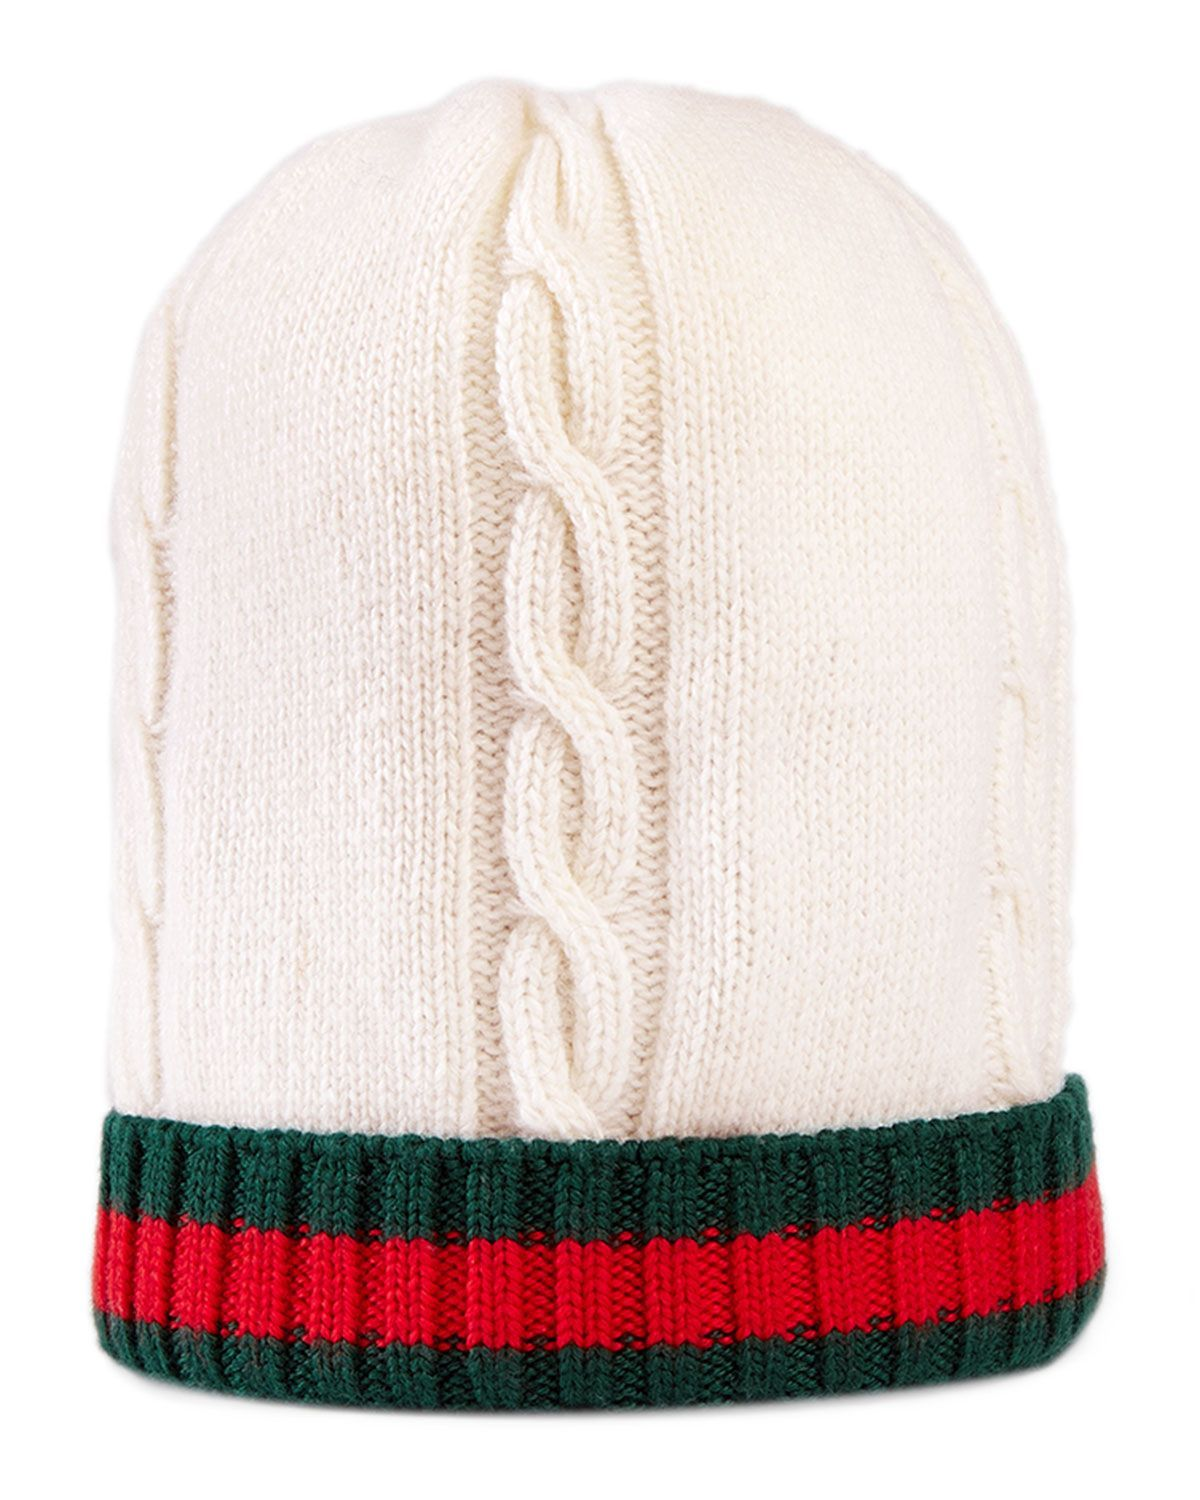 3c25852c Gucci Wool Web-Trim Tricot Beanie, Kids Unisex, Size: L, White/Dark Green